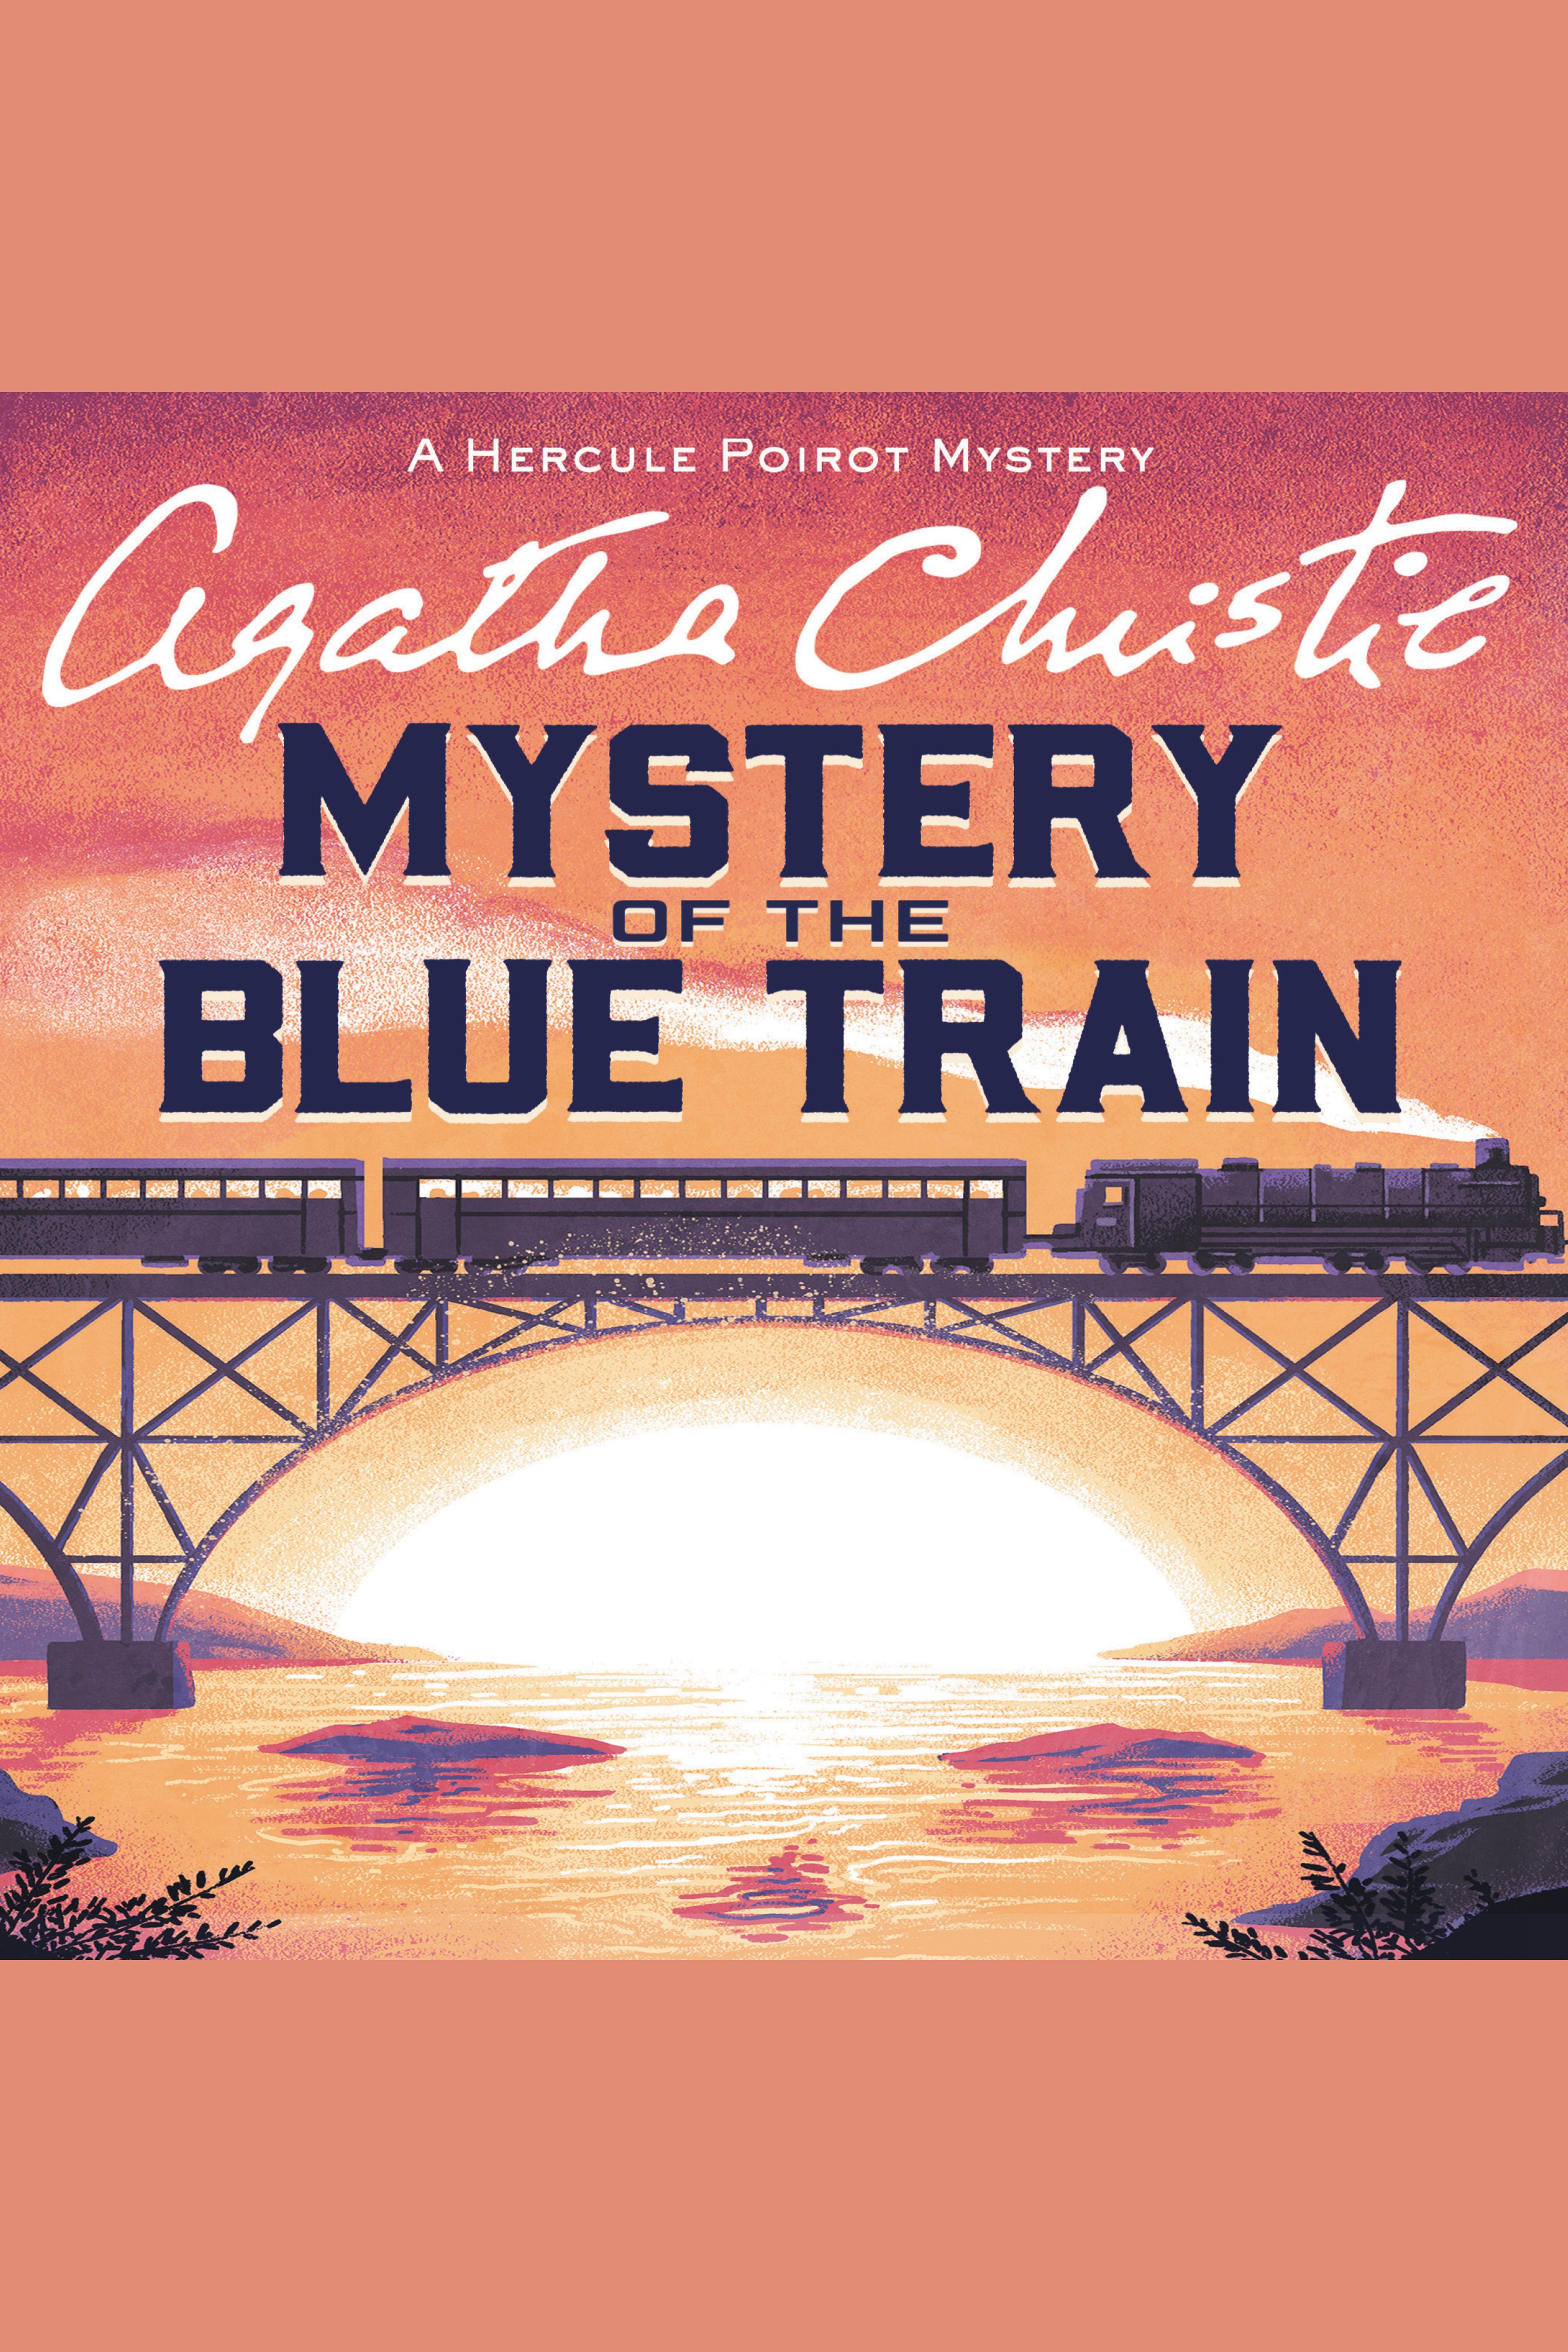 Mystery of the Blue Train, The A Hercule Poirot Mystery